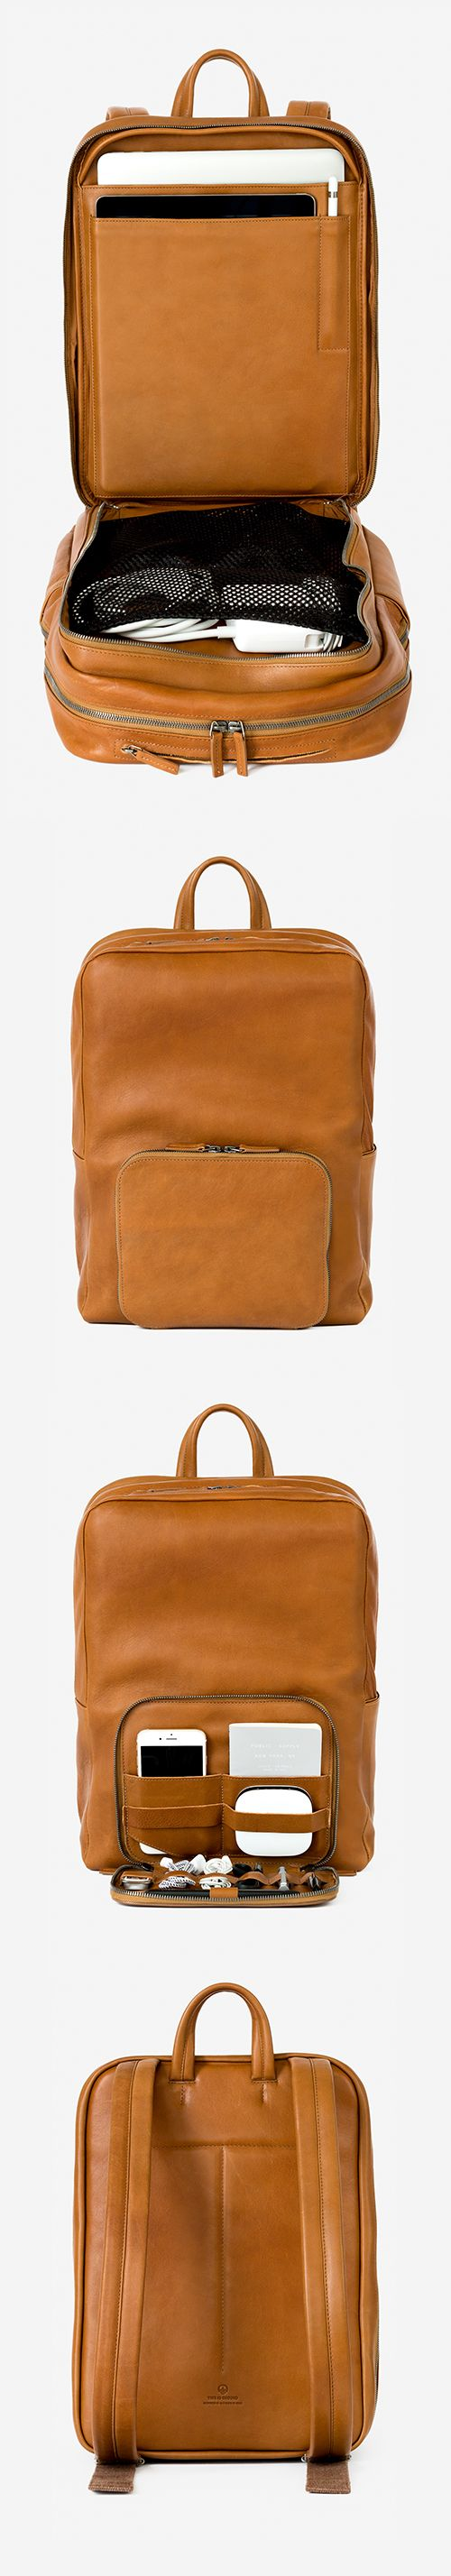 take a look at this leather backpack with wifi, location tracking and lots of organization